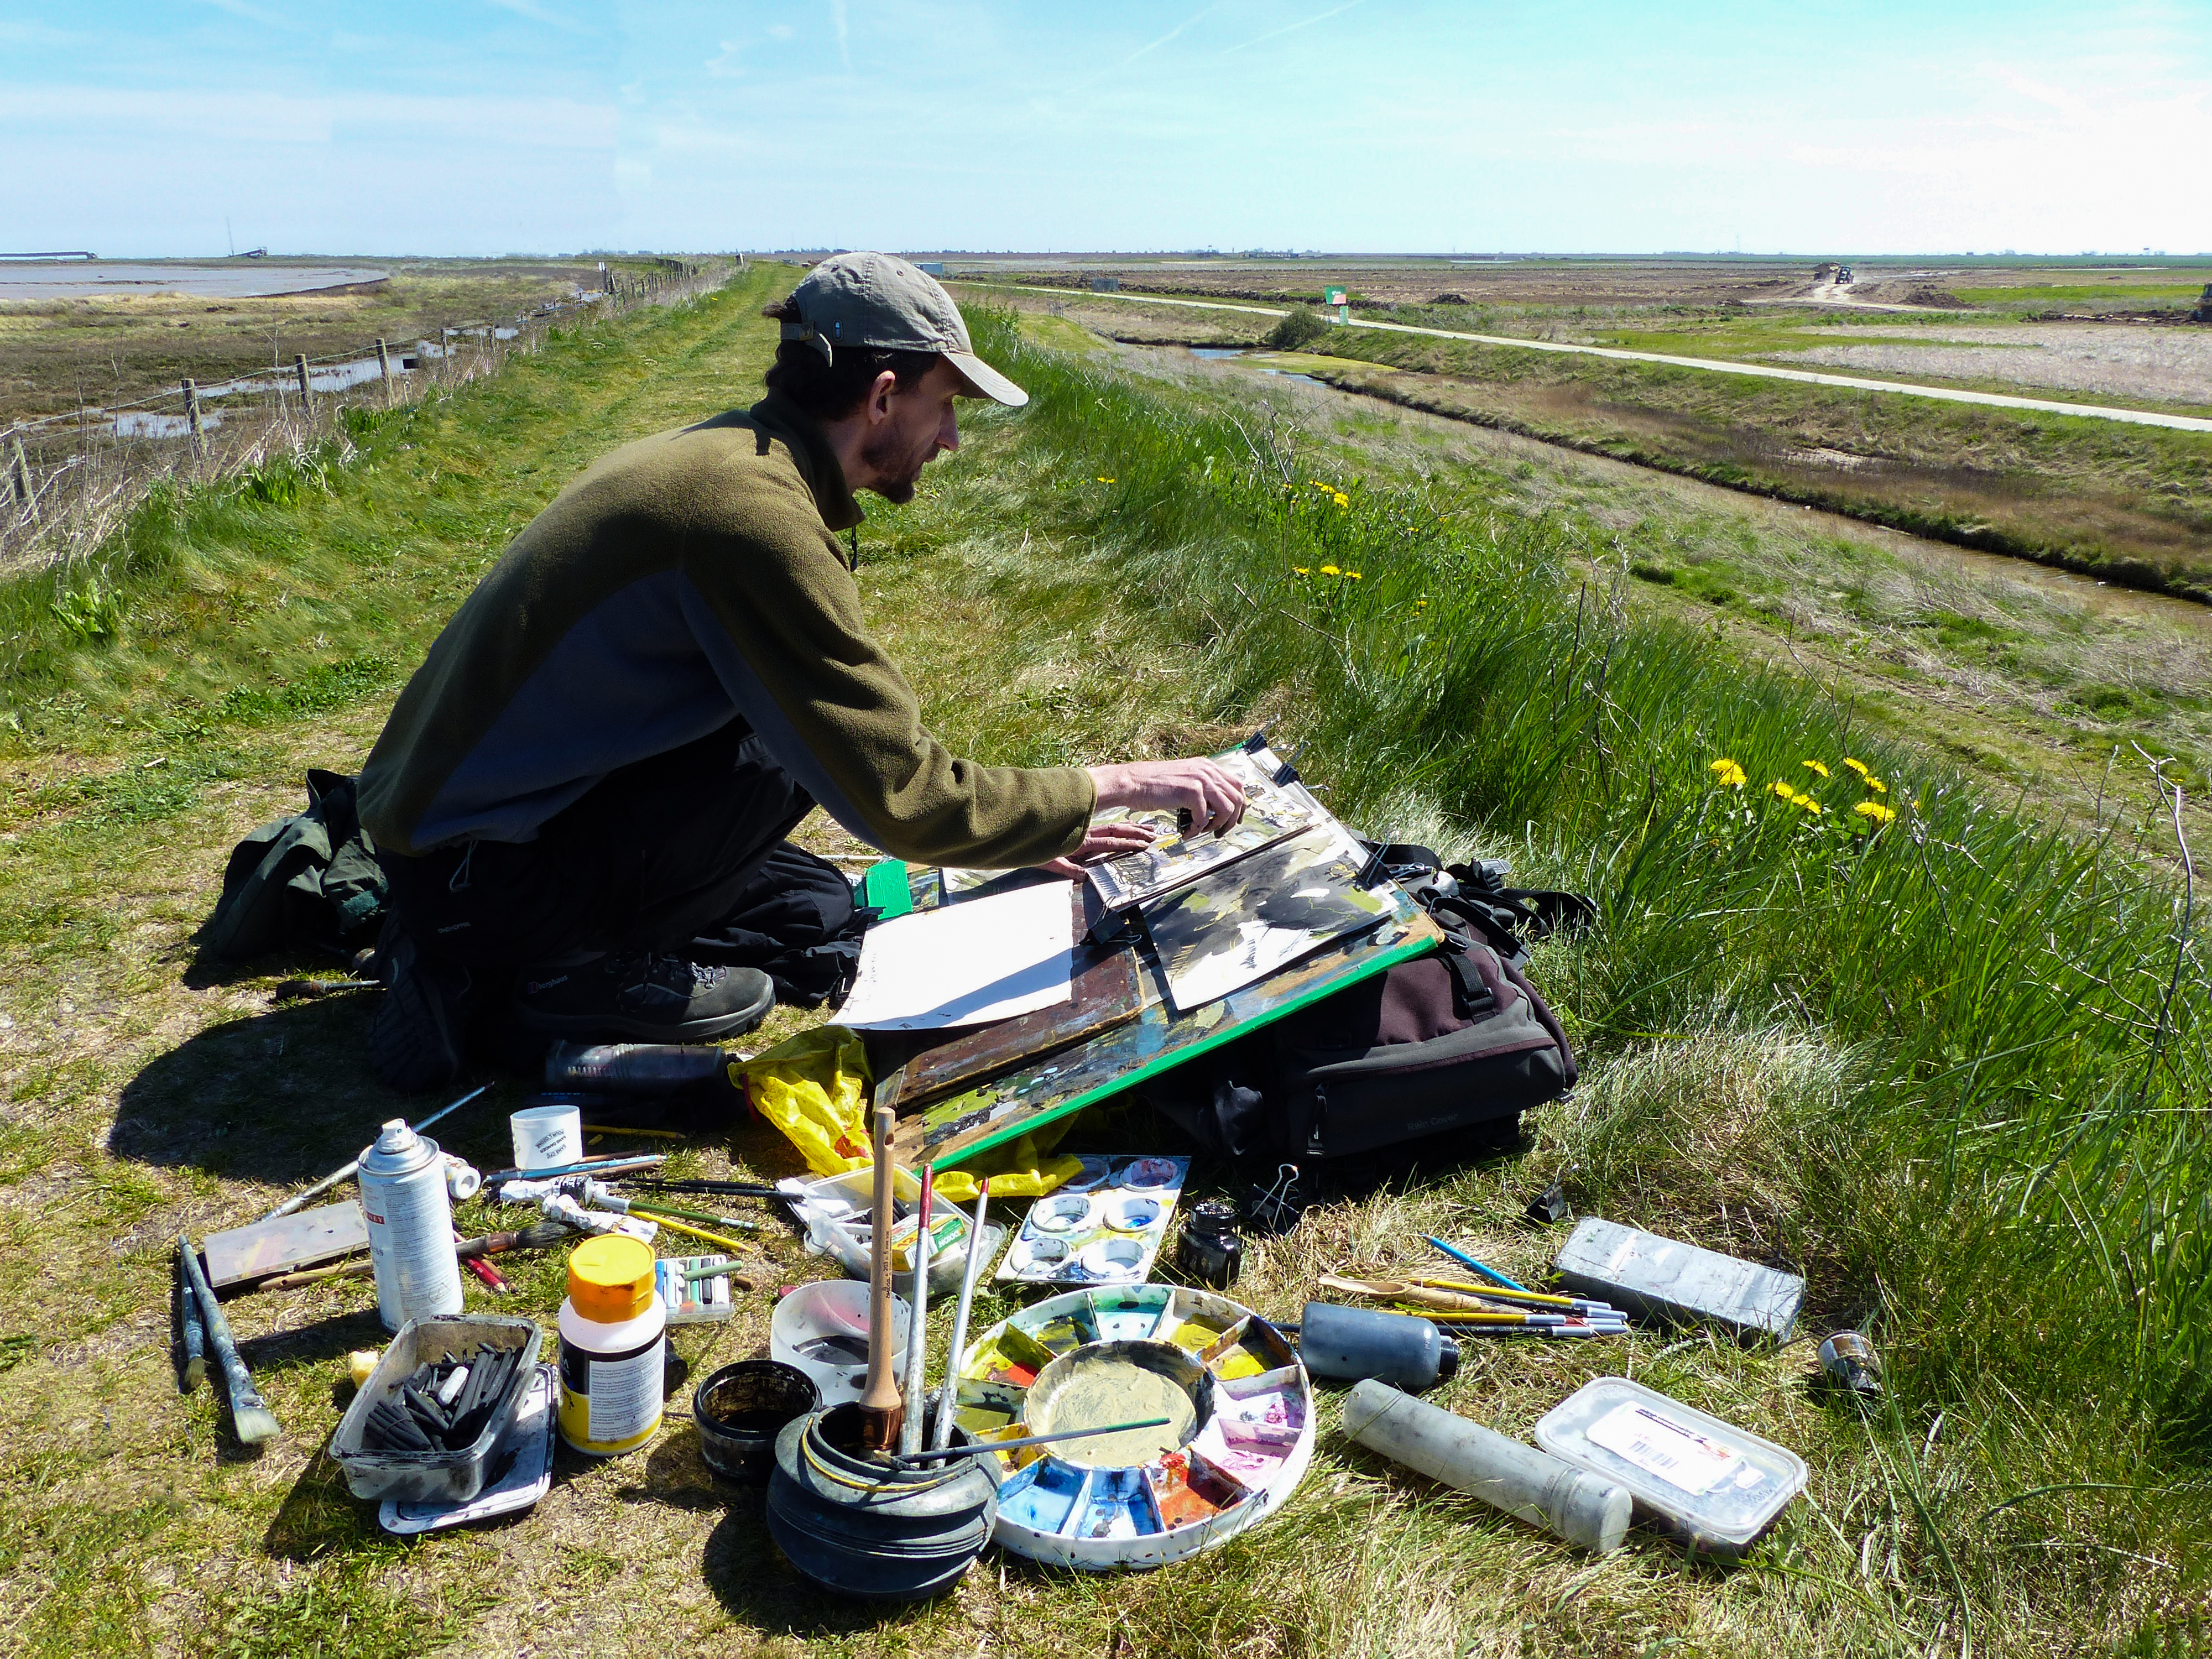 <p>Nik Pollard painting as part of the Wallasea project</p>